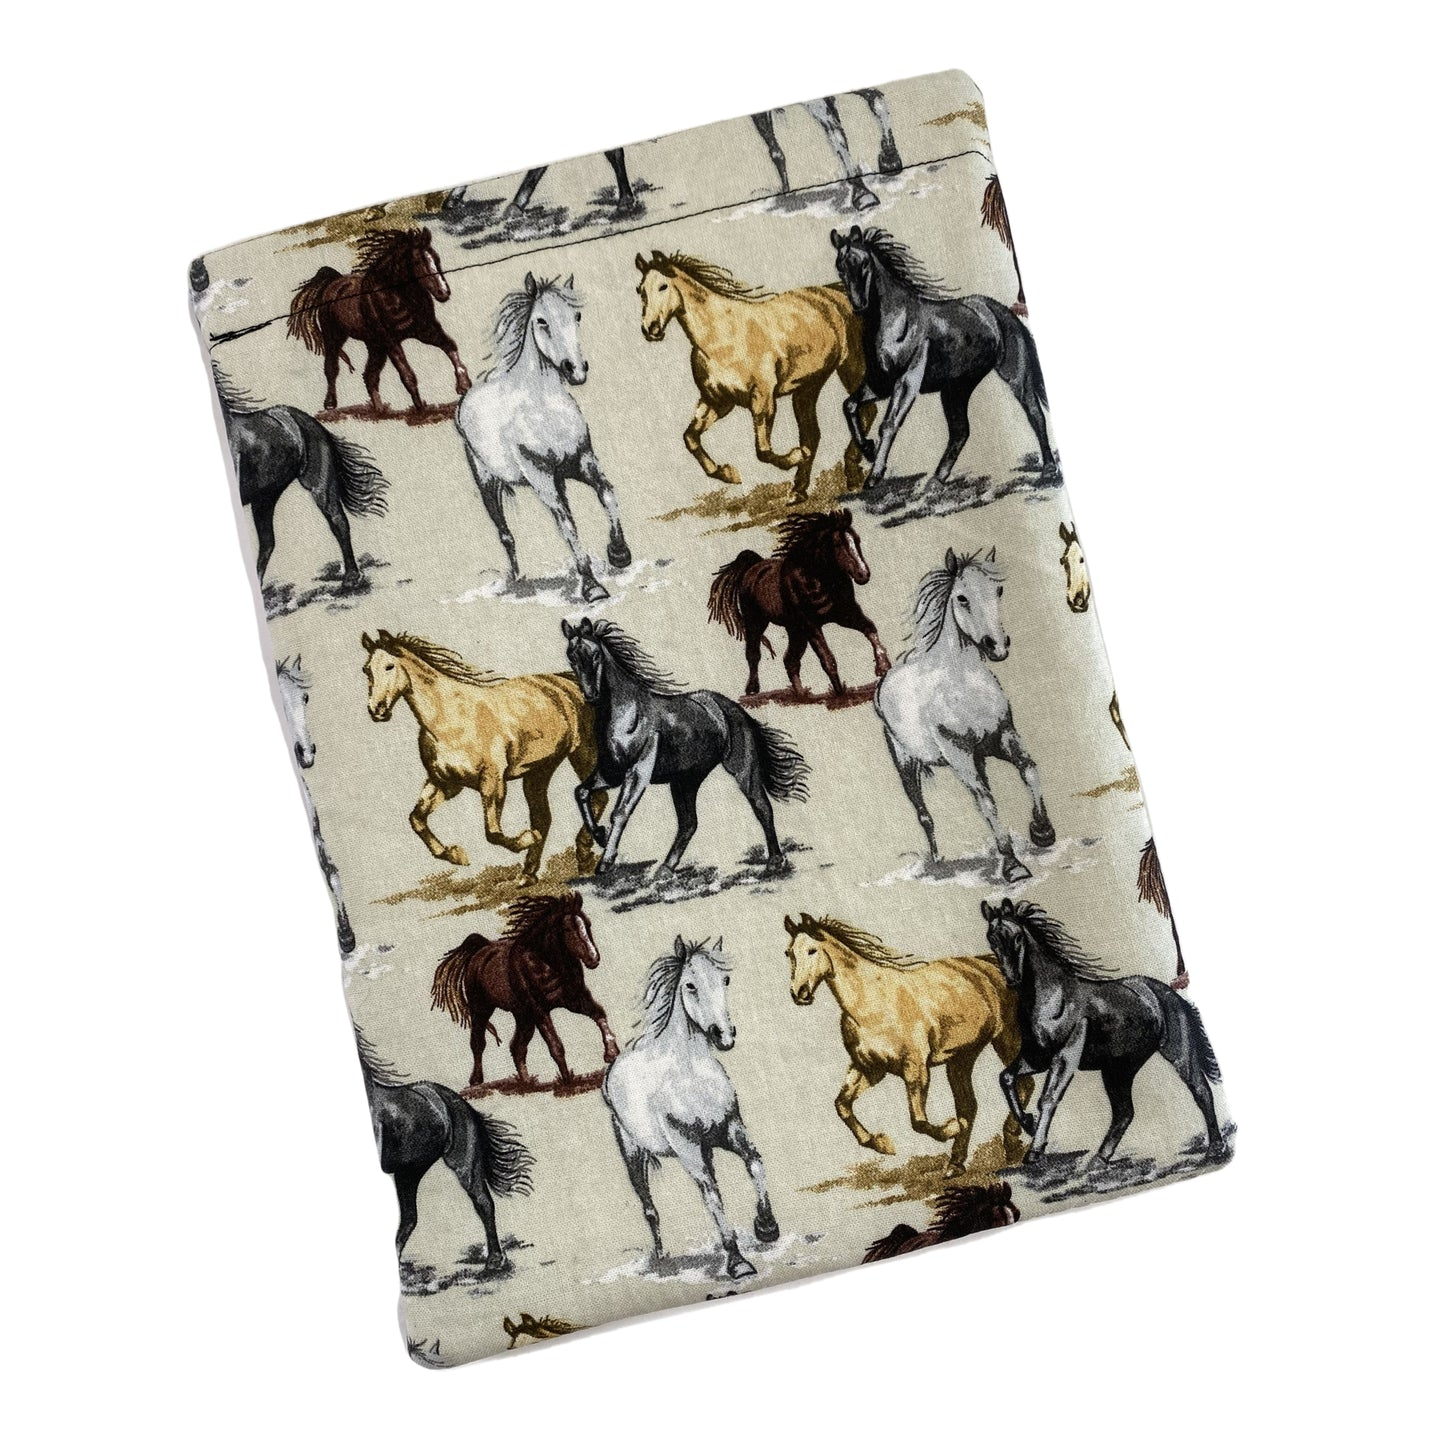 Horses Running Padded Book Sleeve